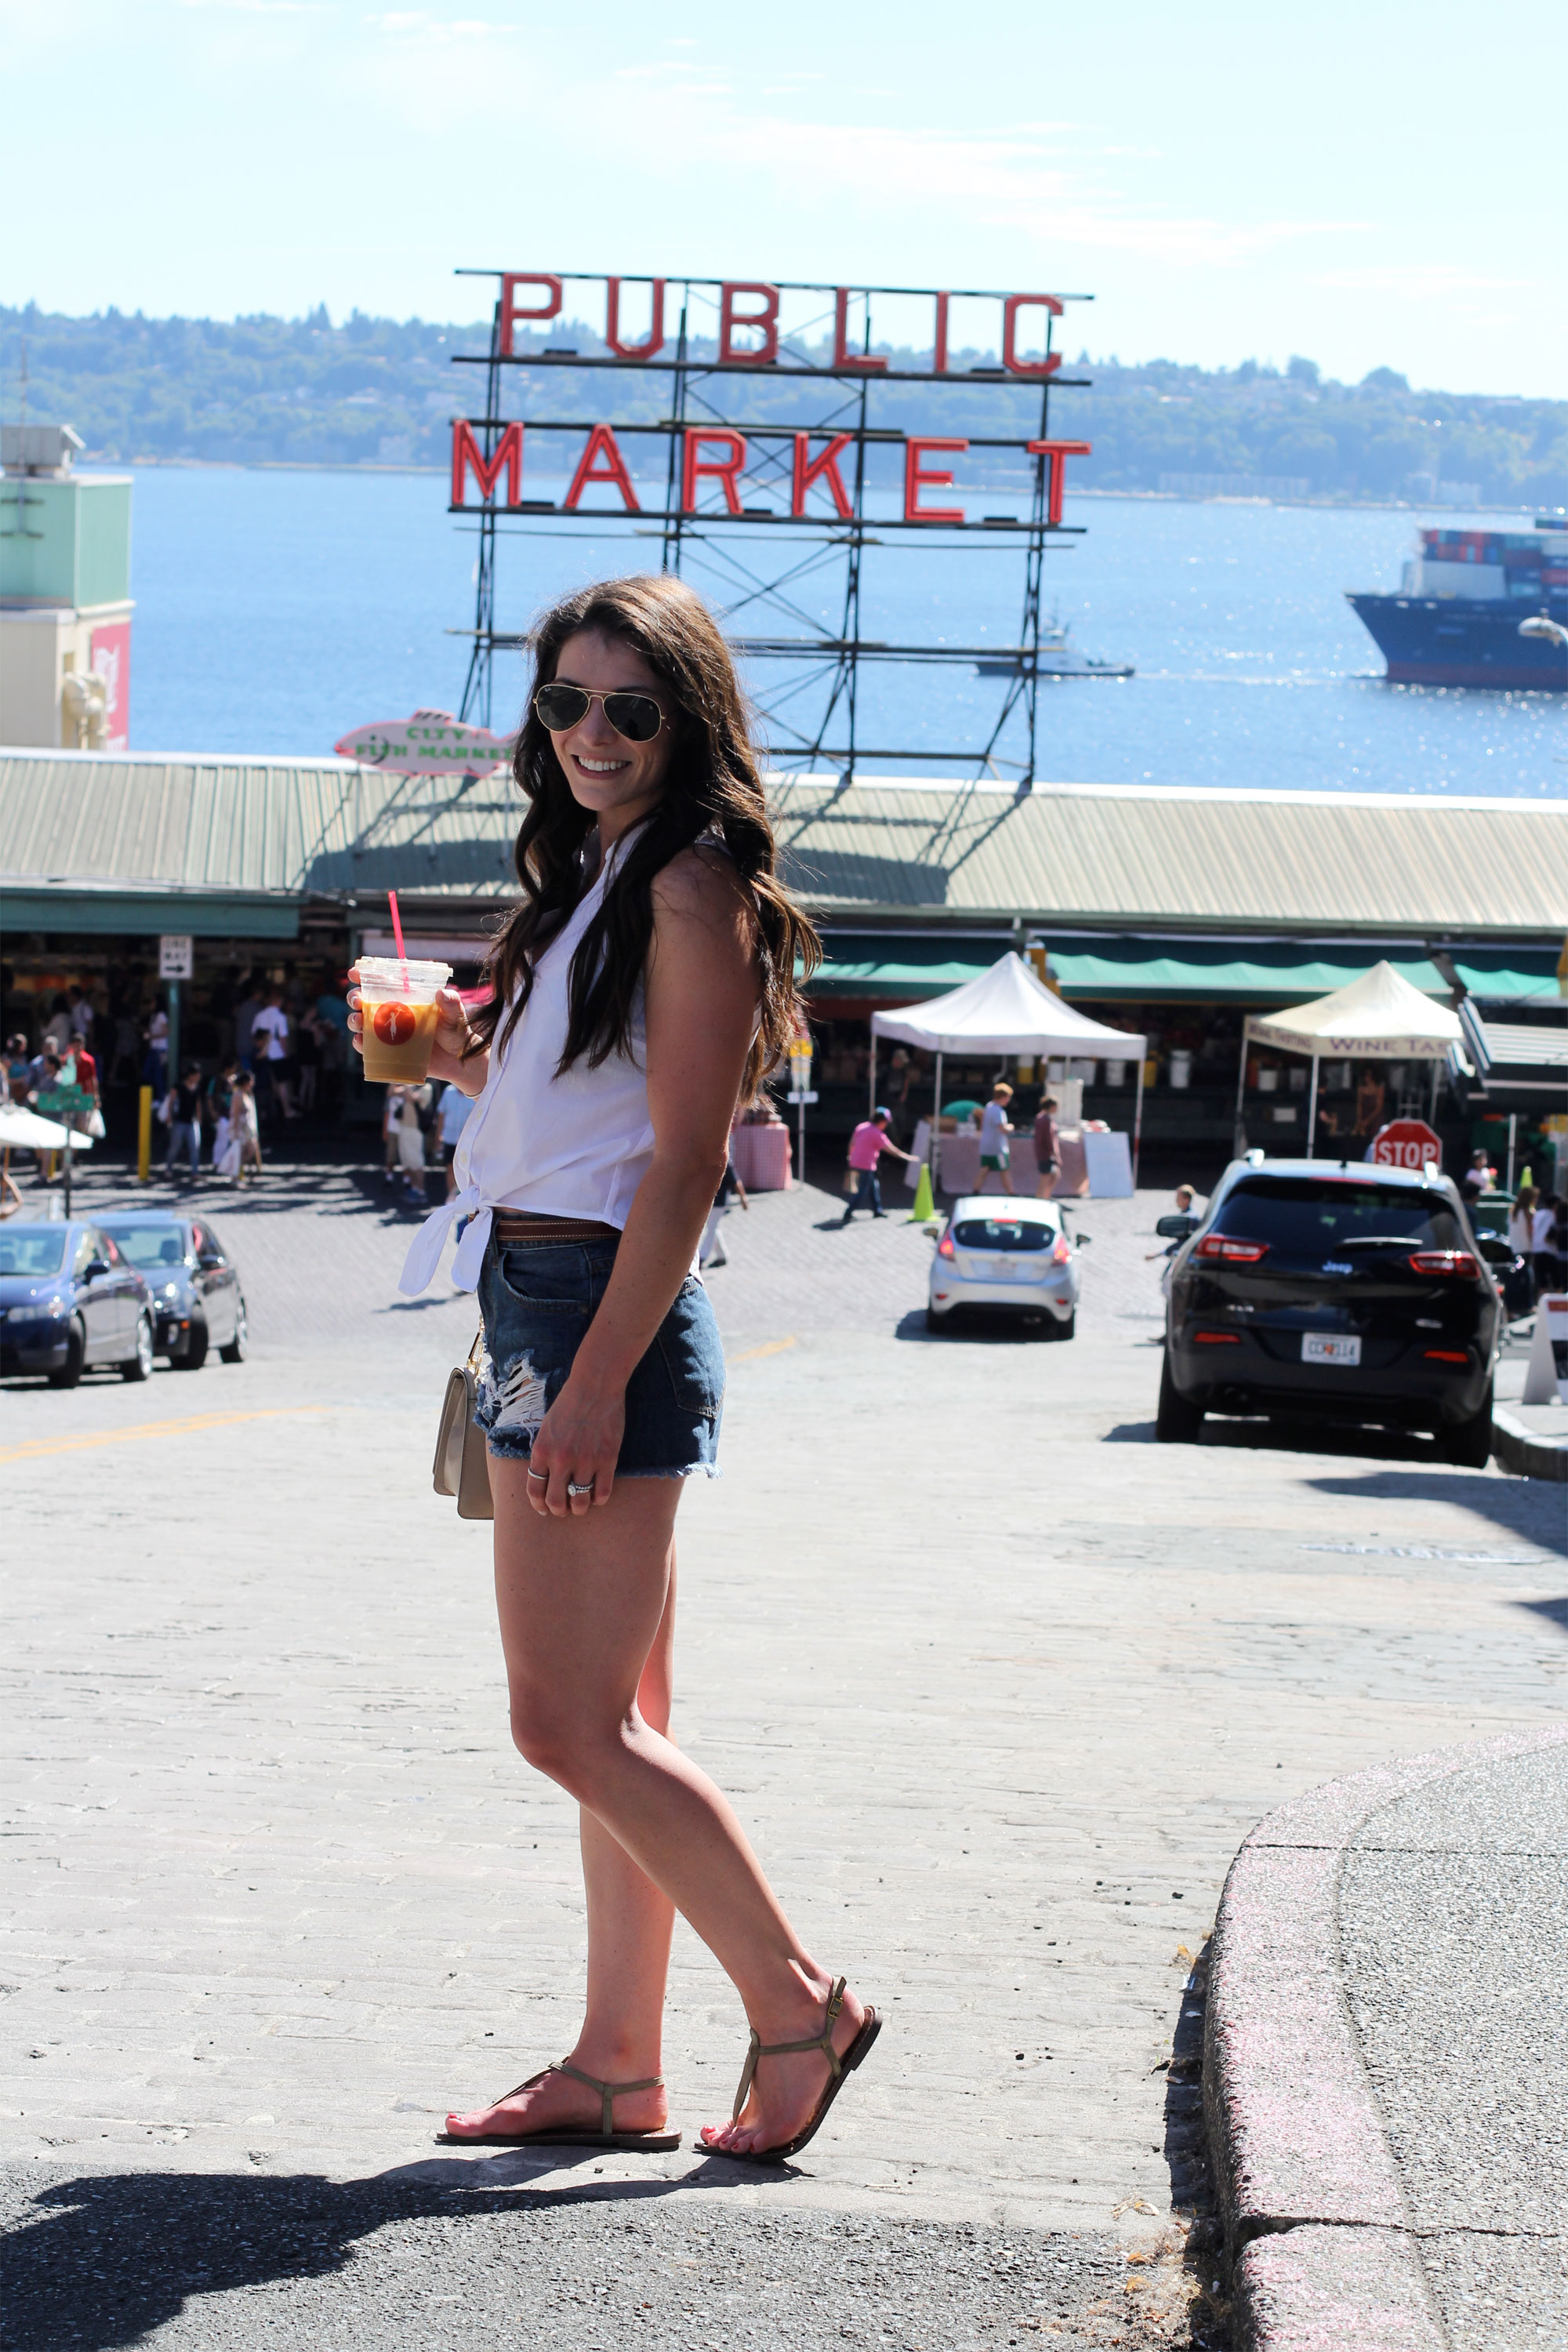 Seattle Fashion Blogger, Pike Place Market, Summer Style, White Button Up, Tie Blouse, Cutoff Denim Shorts, Sam Edelman Gigi Sandals